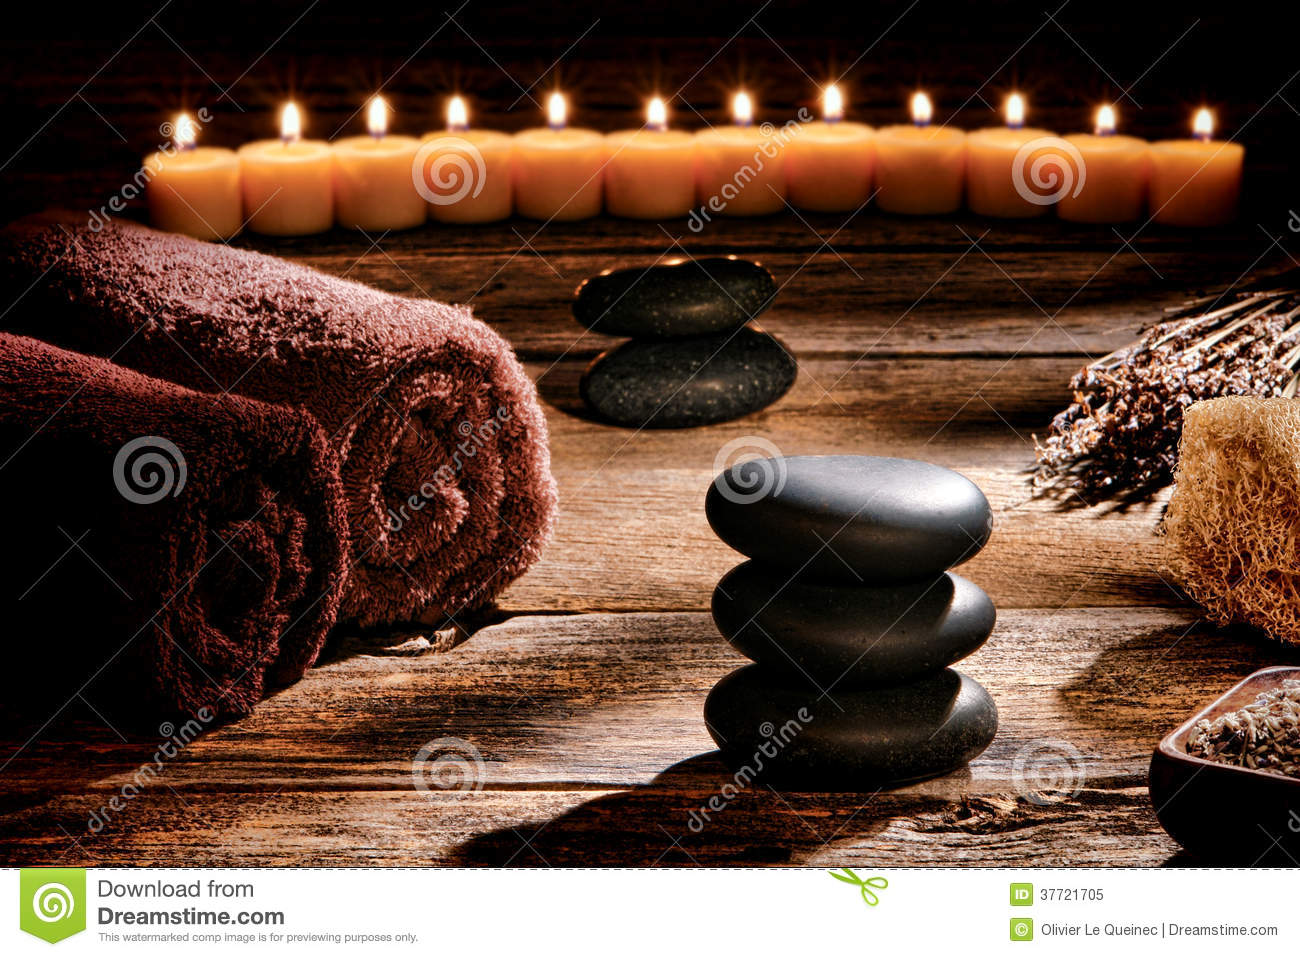 Black Polished Massage Stones Cairn in Rustic Spa